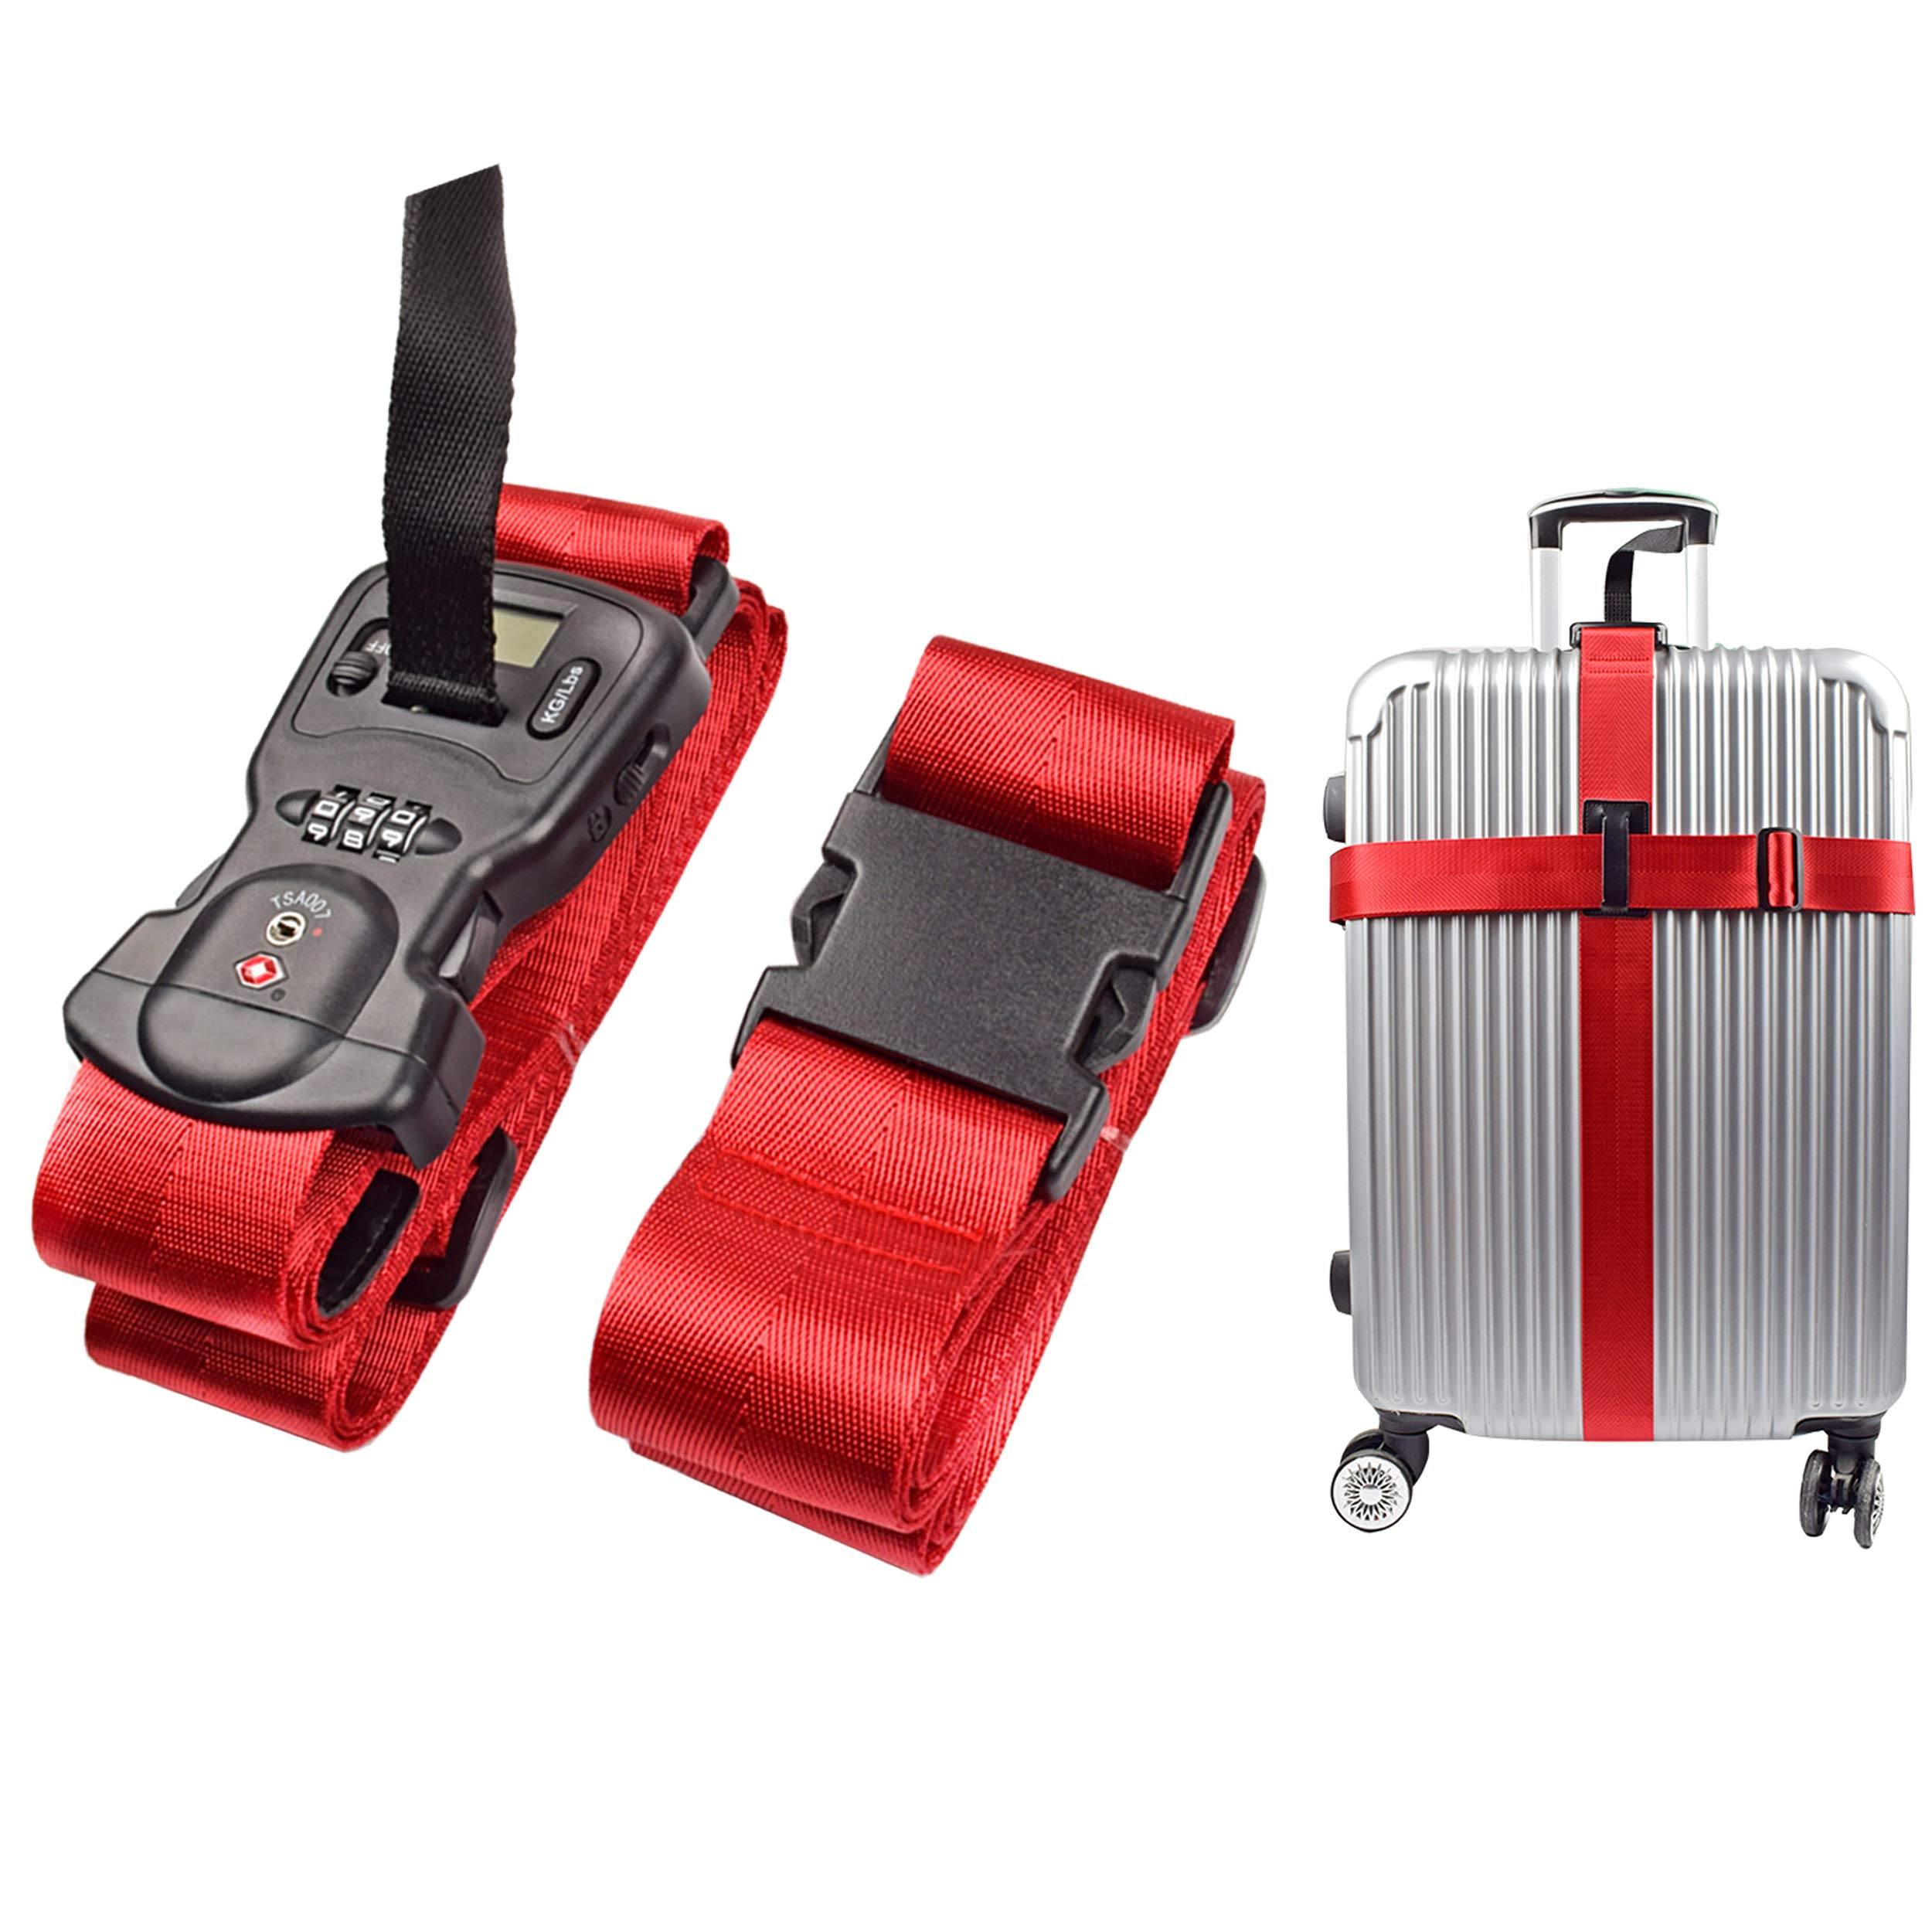 Luggage Strap Smaior Cross Combination luggage straps with Luggage Scale an TSA Lock (1Pack-Red) by Smaior